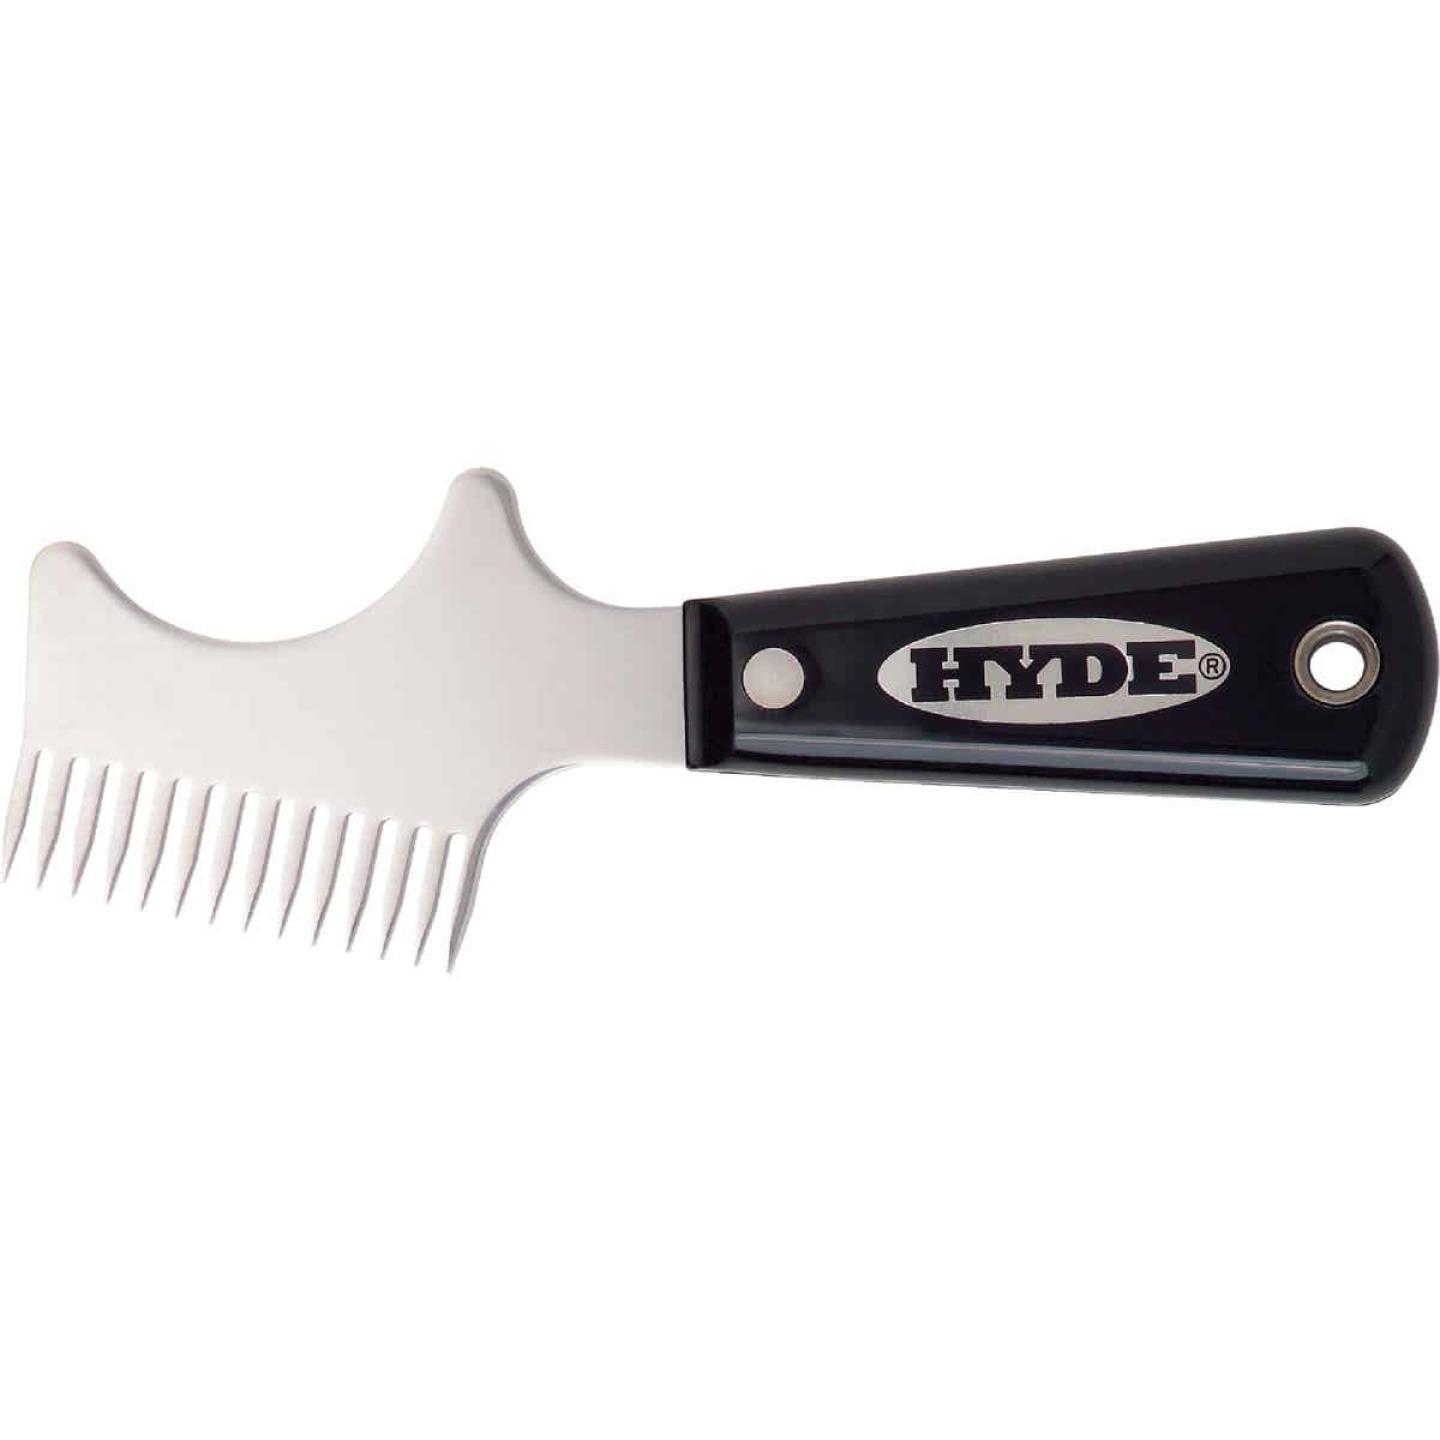 Hyde Black & Silver Stainless Steel Brush & Roller Cleaner Image 1